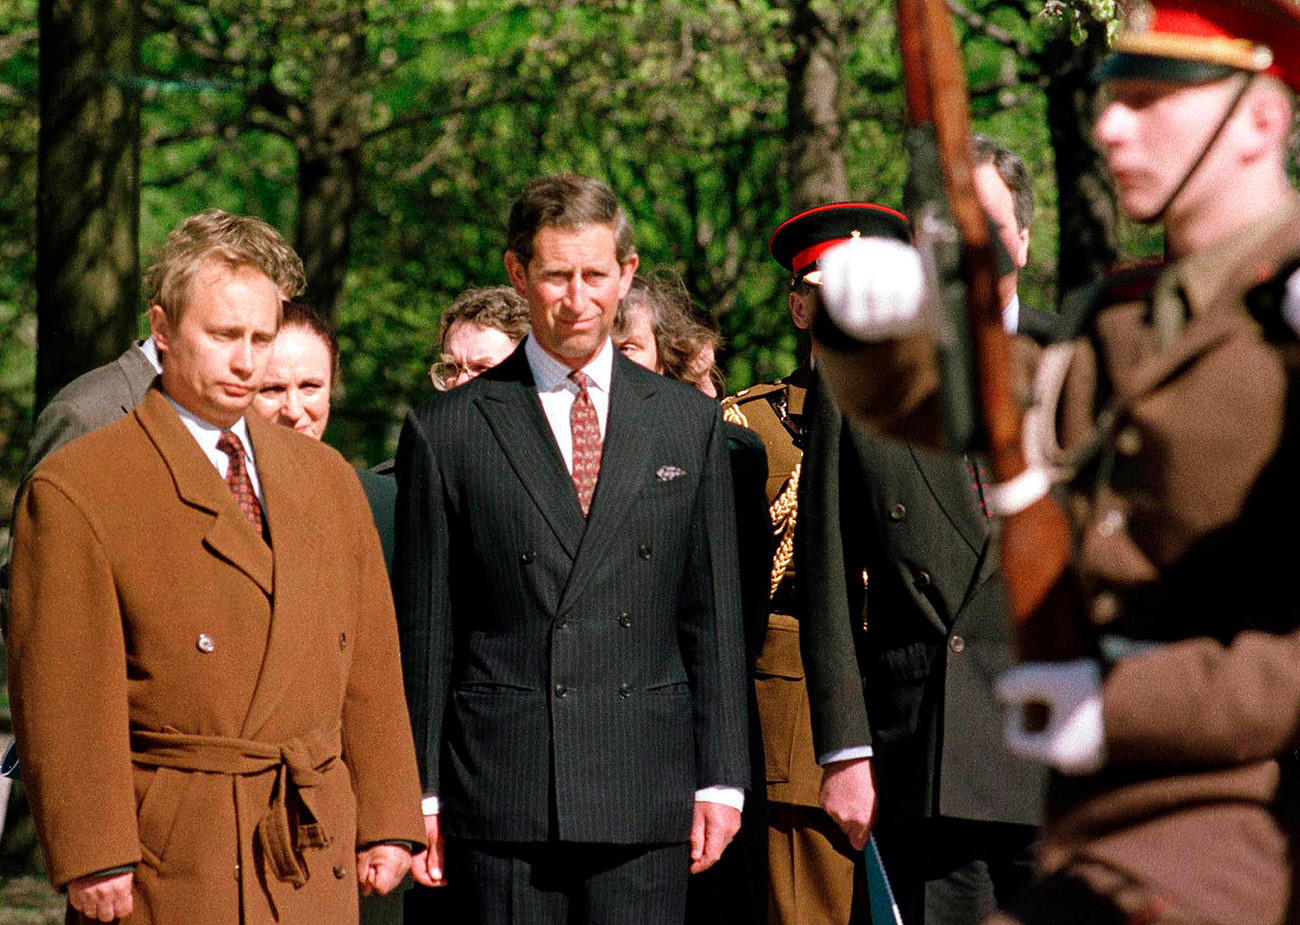 Vladimir Putin attends a wreath laying ceremony with Prince Charles at the Piskarevskoe Cemetery in St. Petersburg.